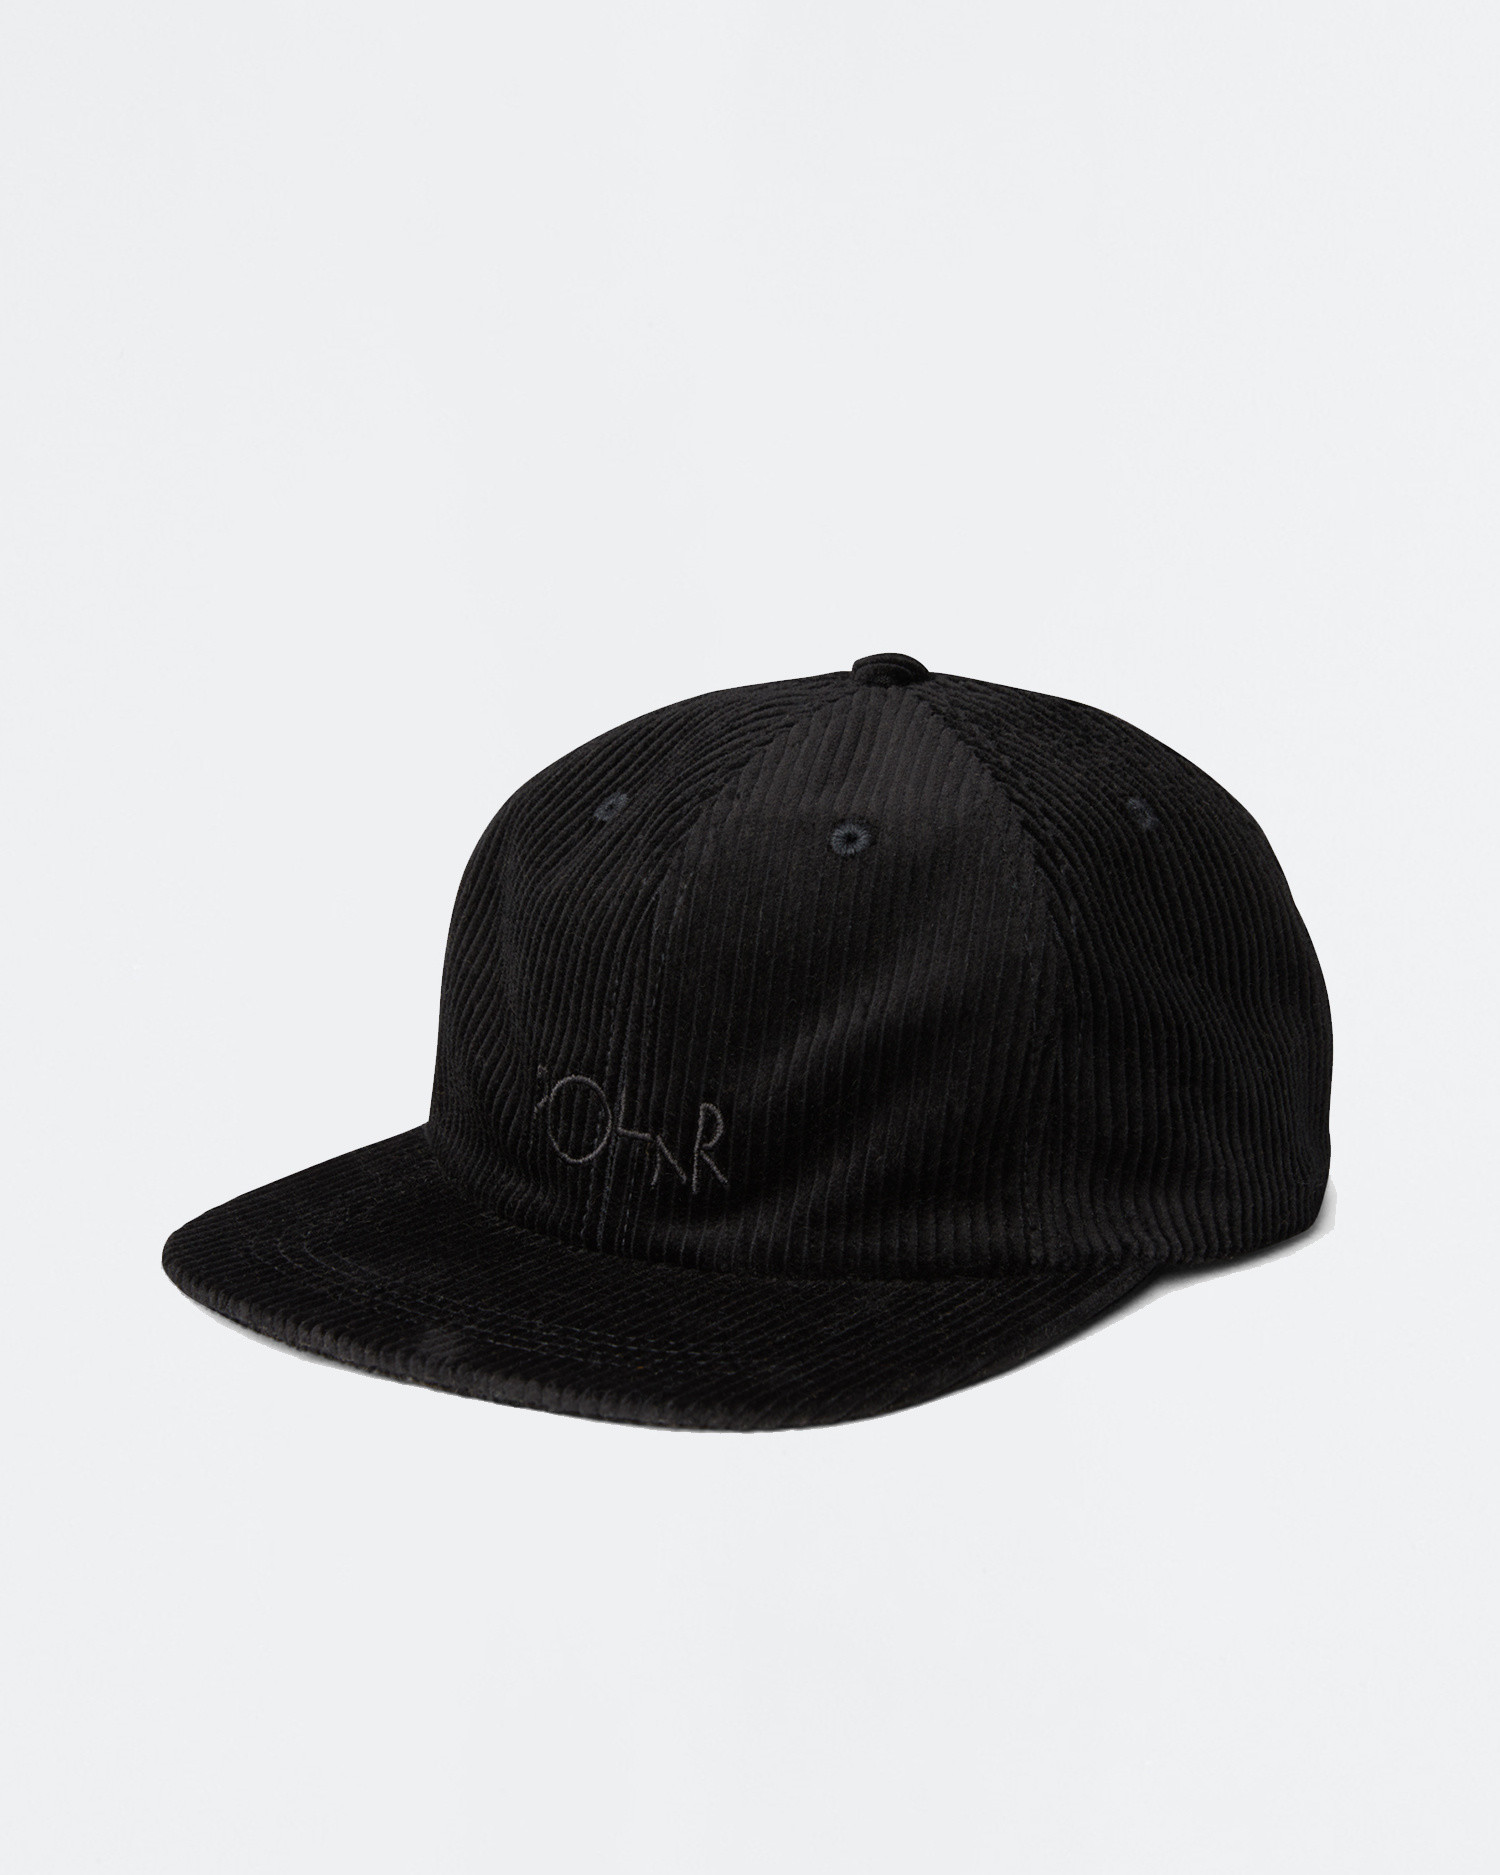 Polar Cord Cap Black